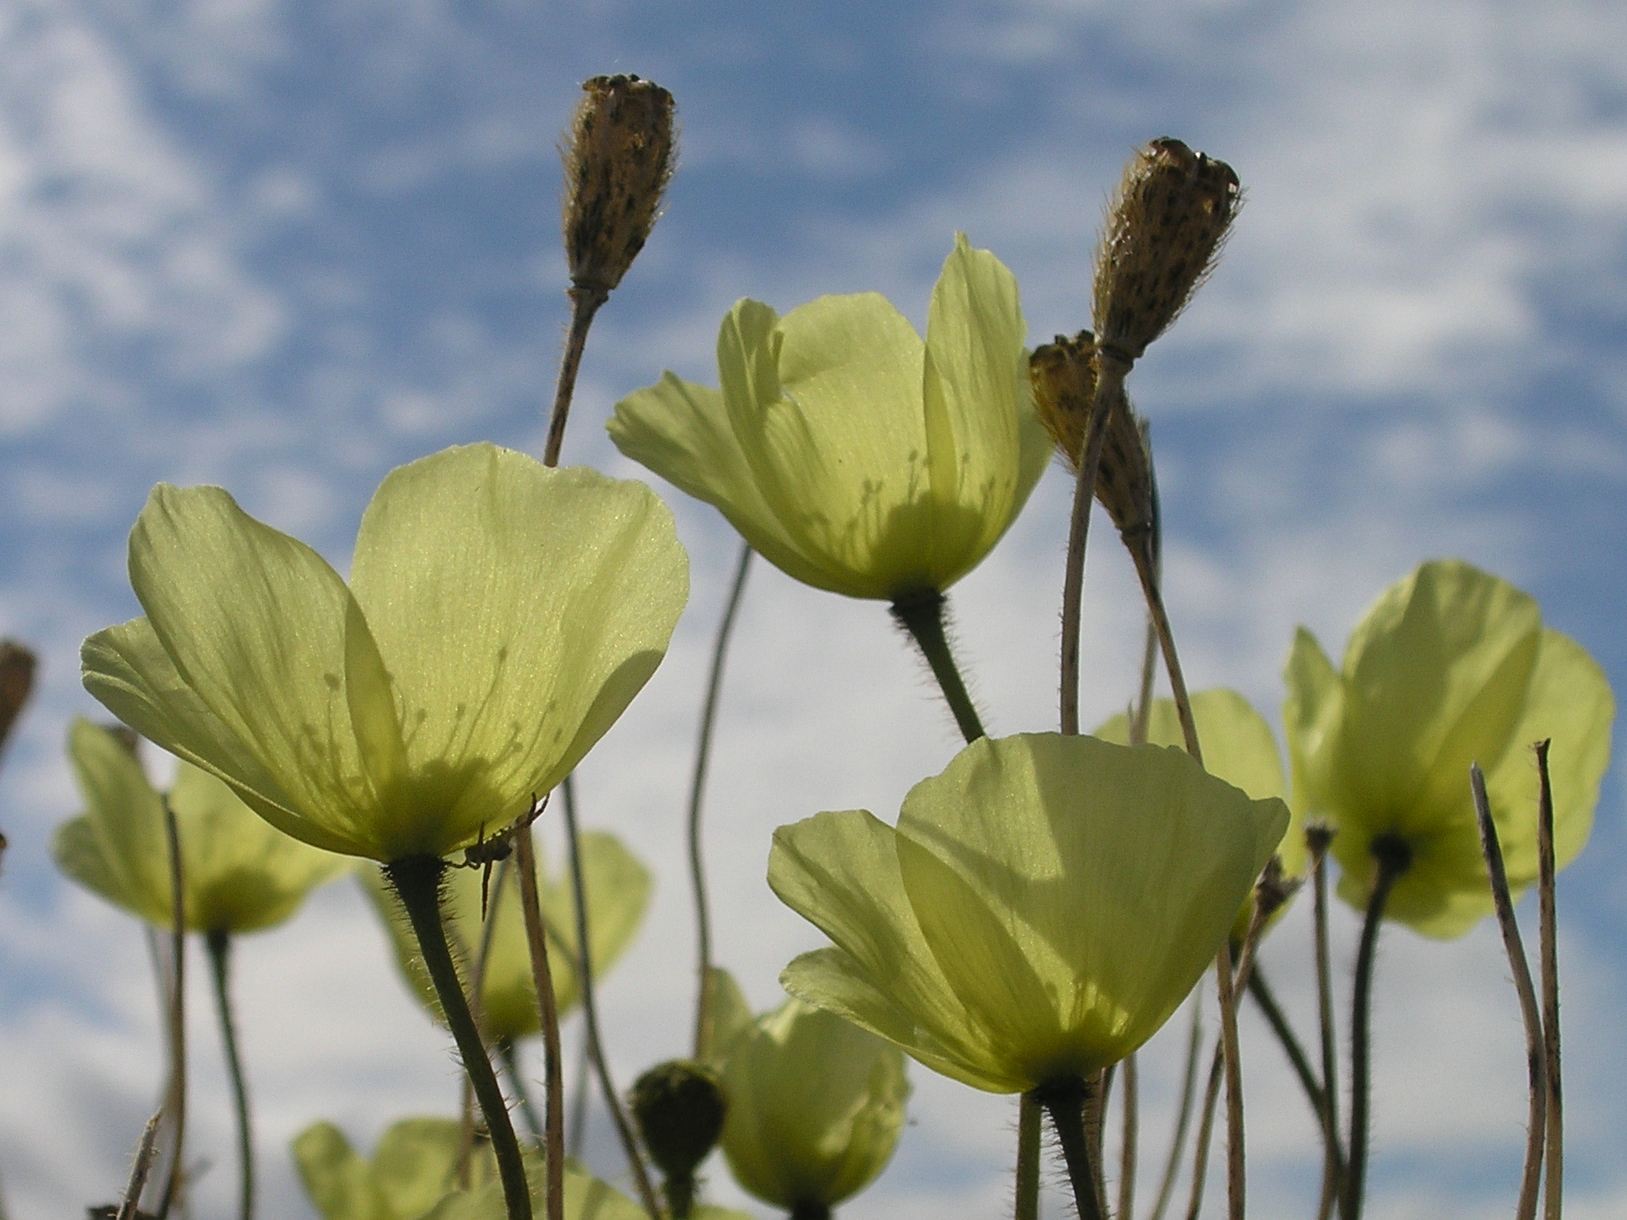 Arctic poppies